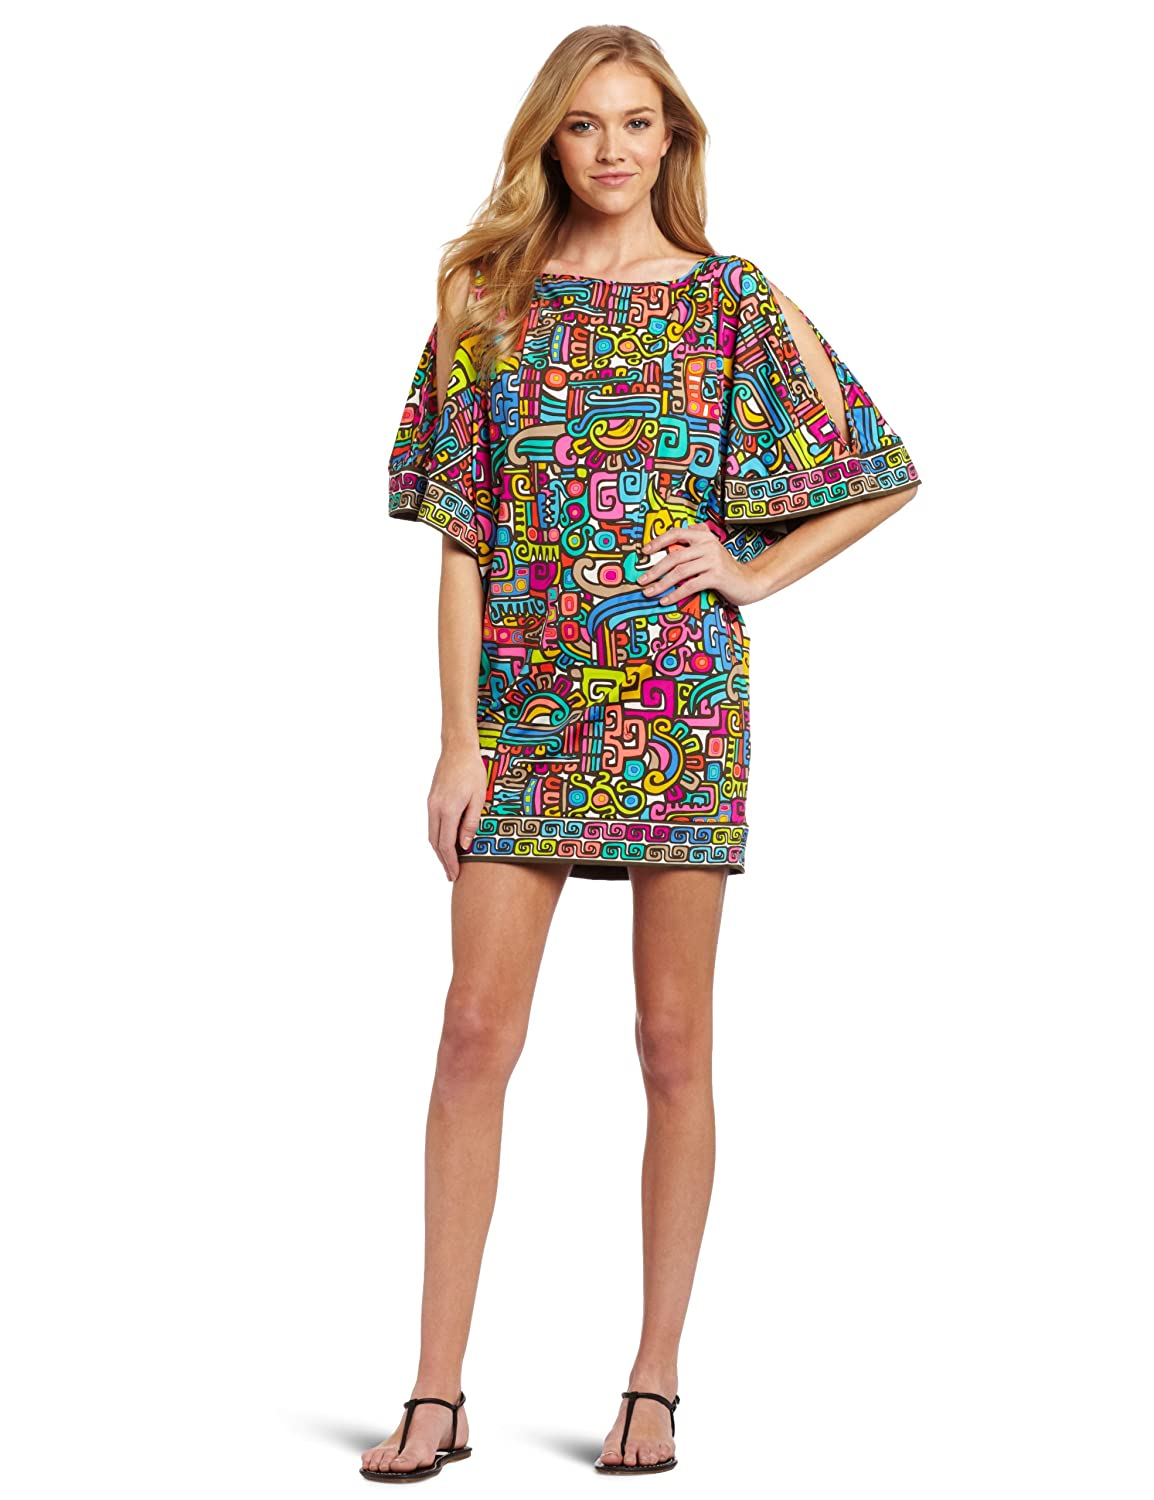 Browse Bonmarché's range of ladies' tunic dresses. Whatever the event, a tunic dress is sure to fit the bill. We have a wide range of ladies' tunic dresses in a variety of styles to suit any taste.